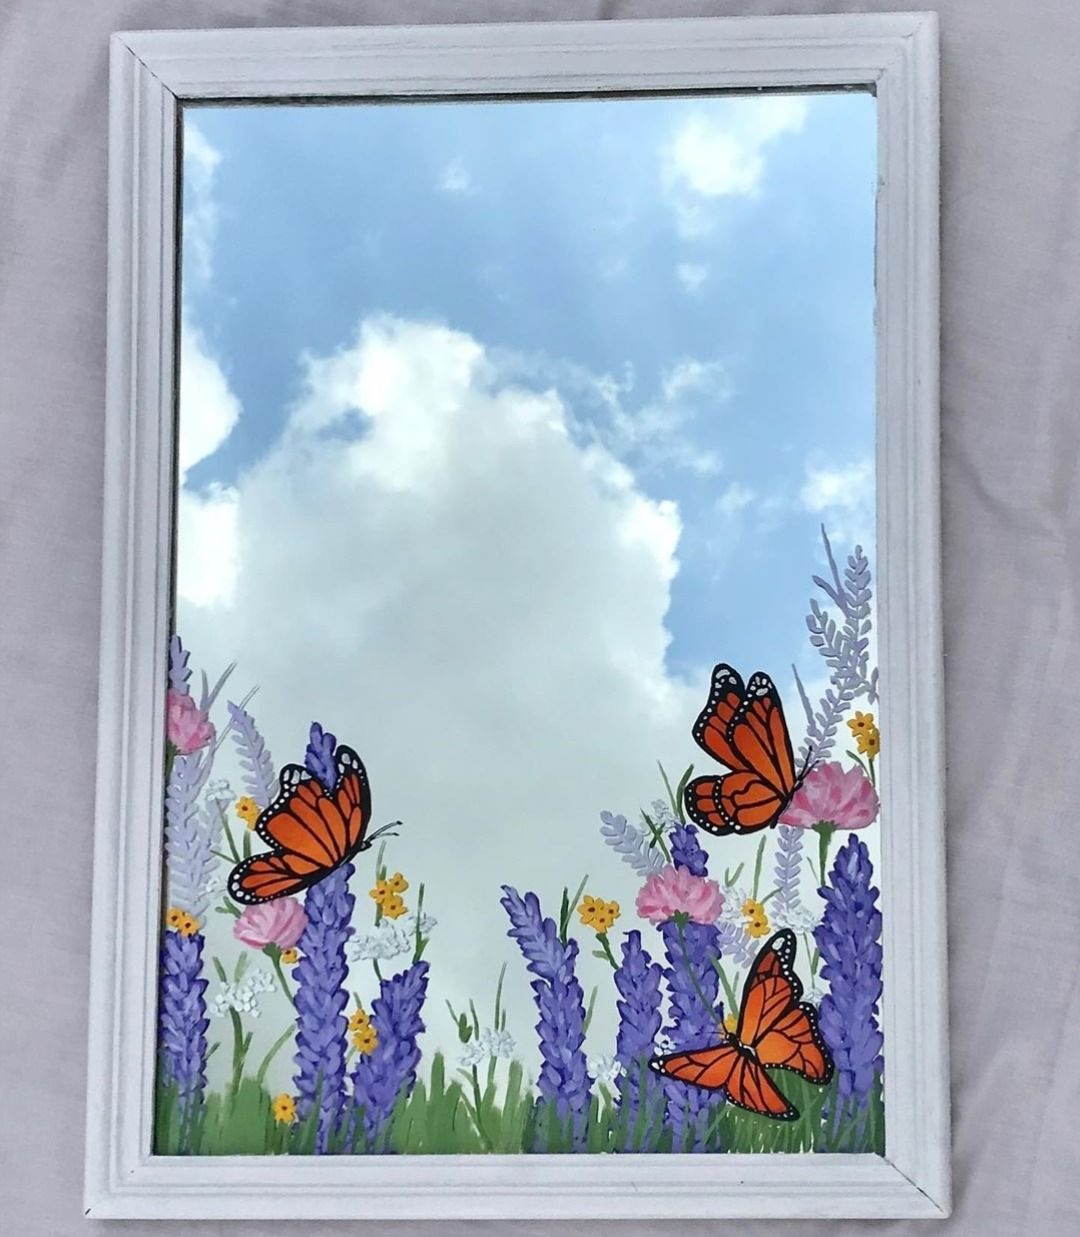 Pin On Painted Mirrors Painted Mirror Art Small Canvas Art Mirror Painting